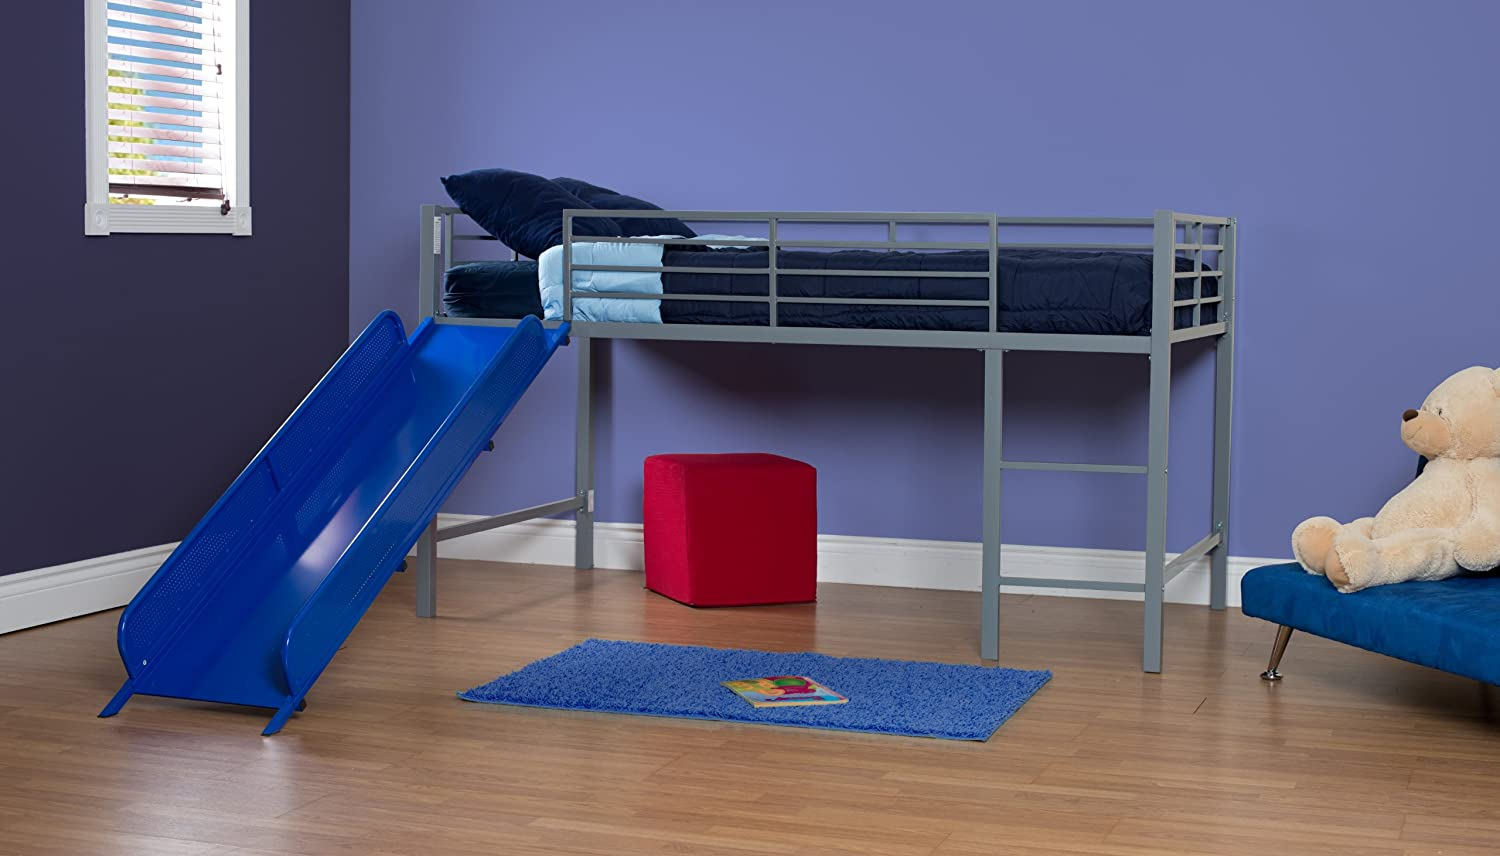 Bunk bed with slide for boys - Bunk Bed With Slide For Boys 34